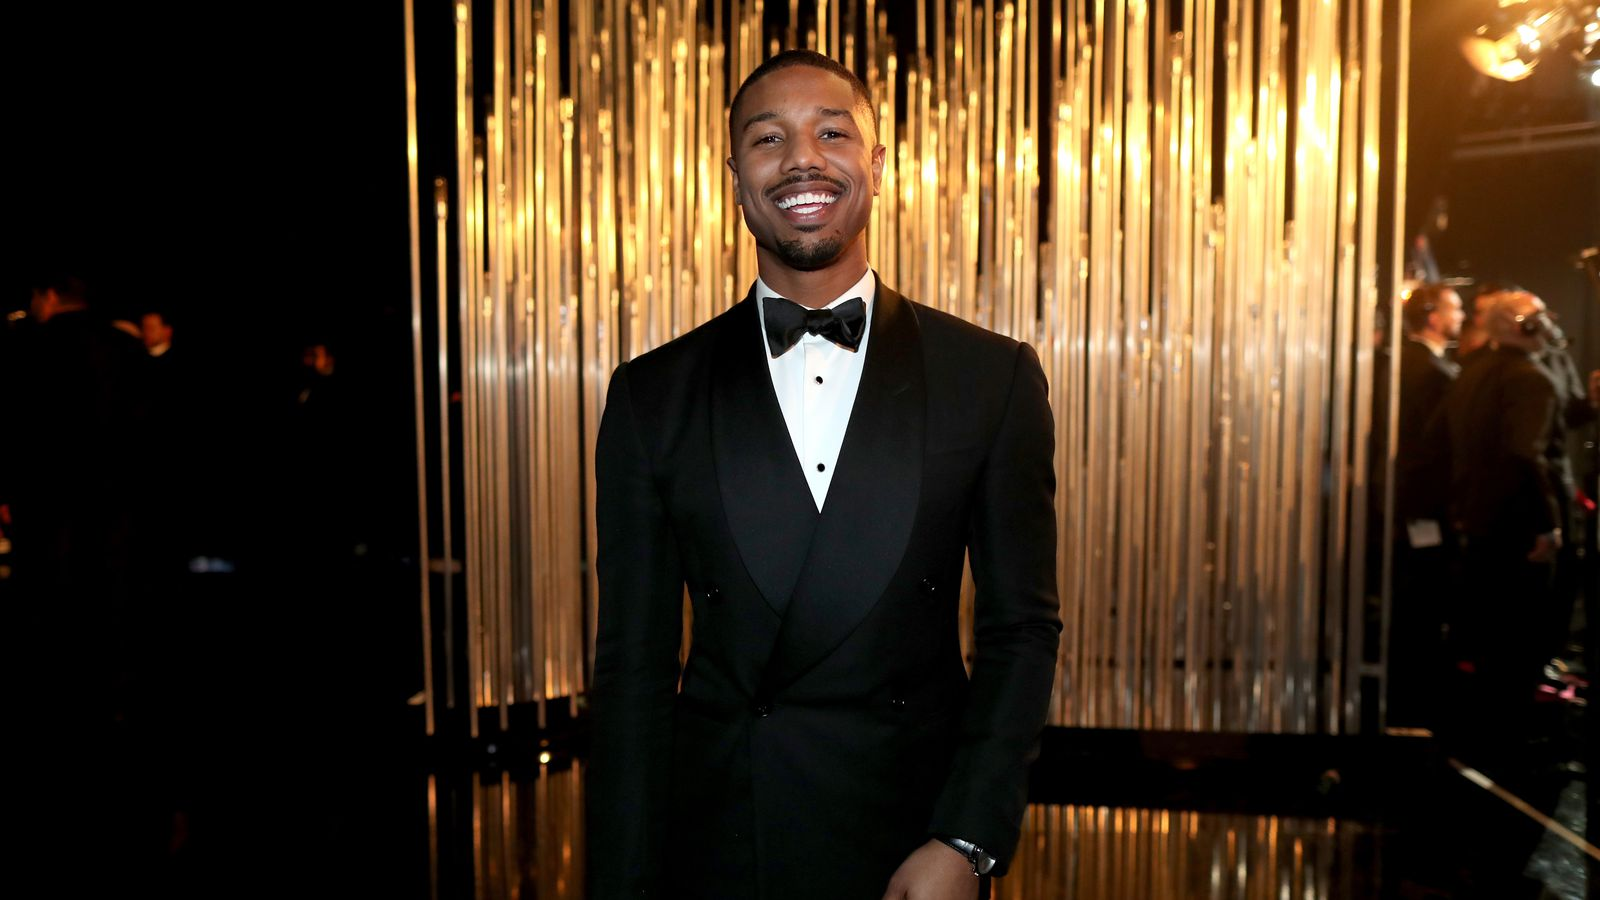 Michael B. Jordan joins the cast of Marvel's Black Panther | The Verge